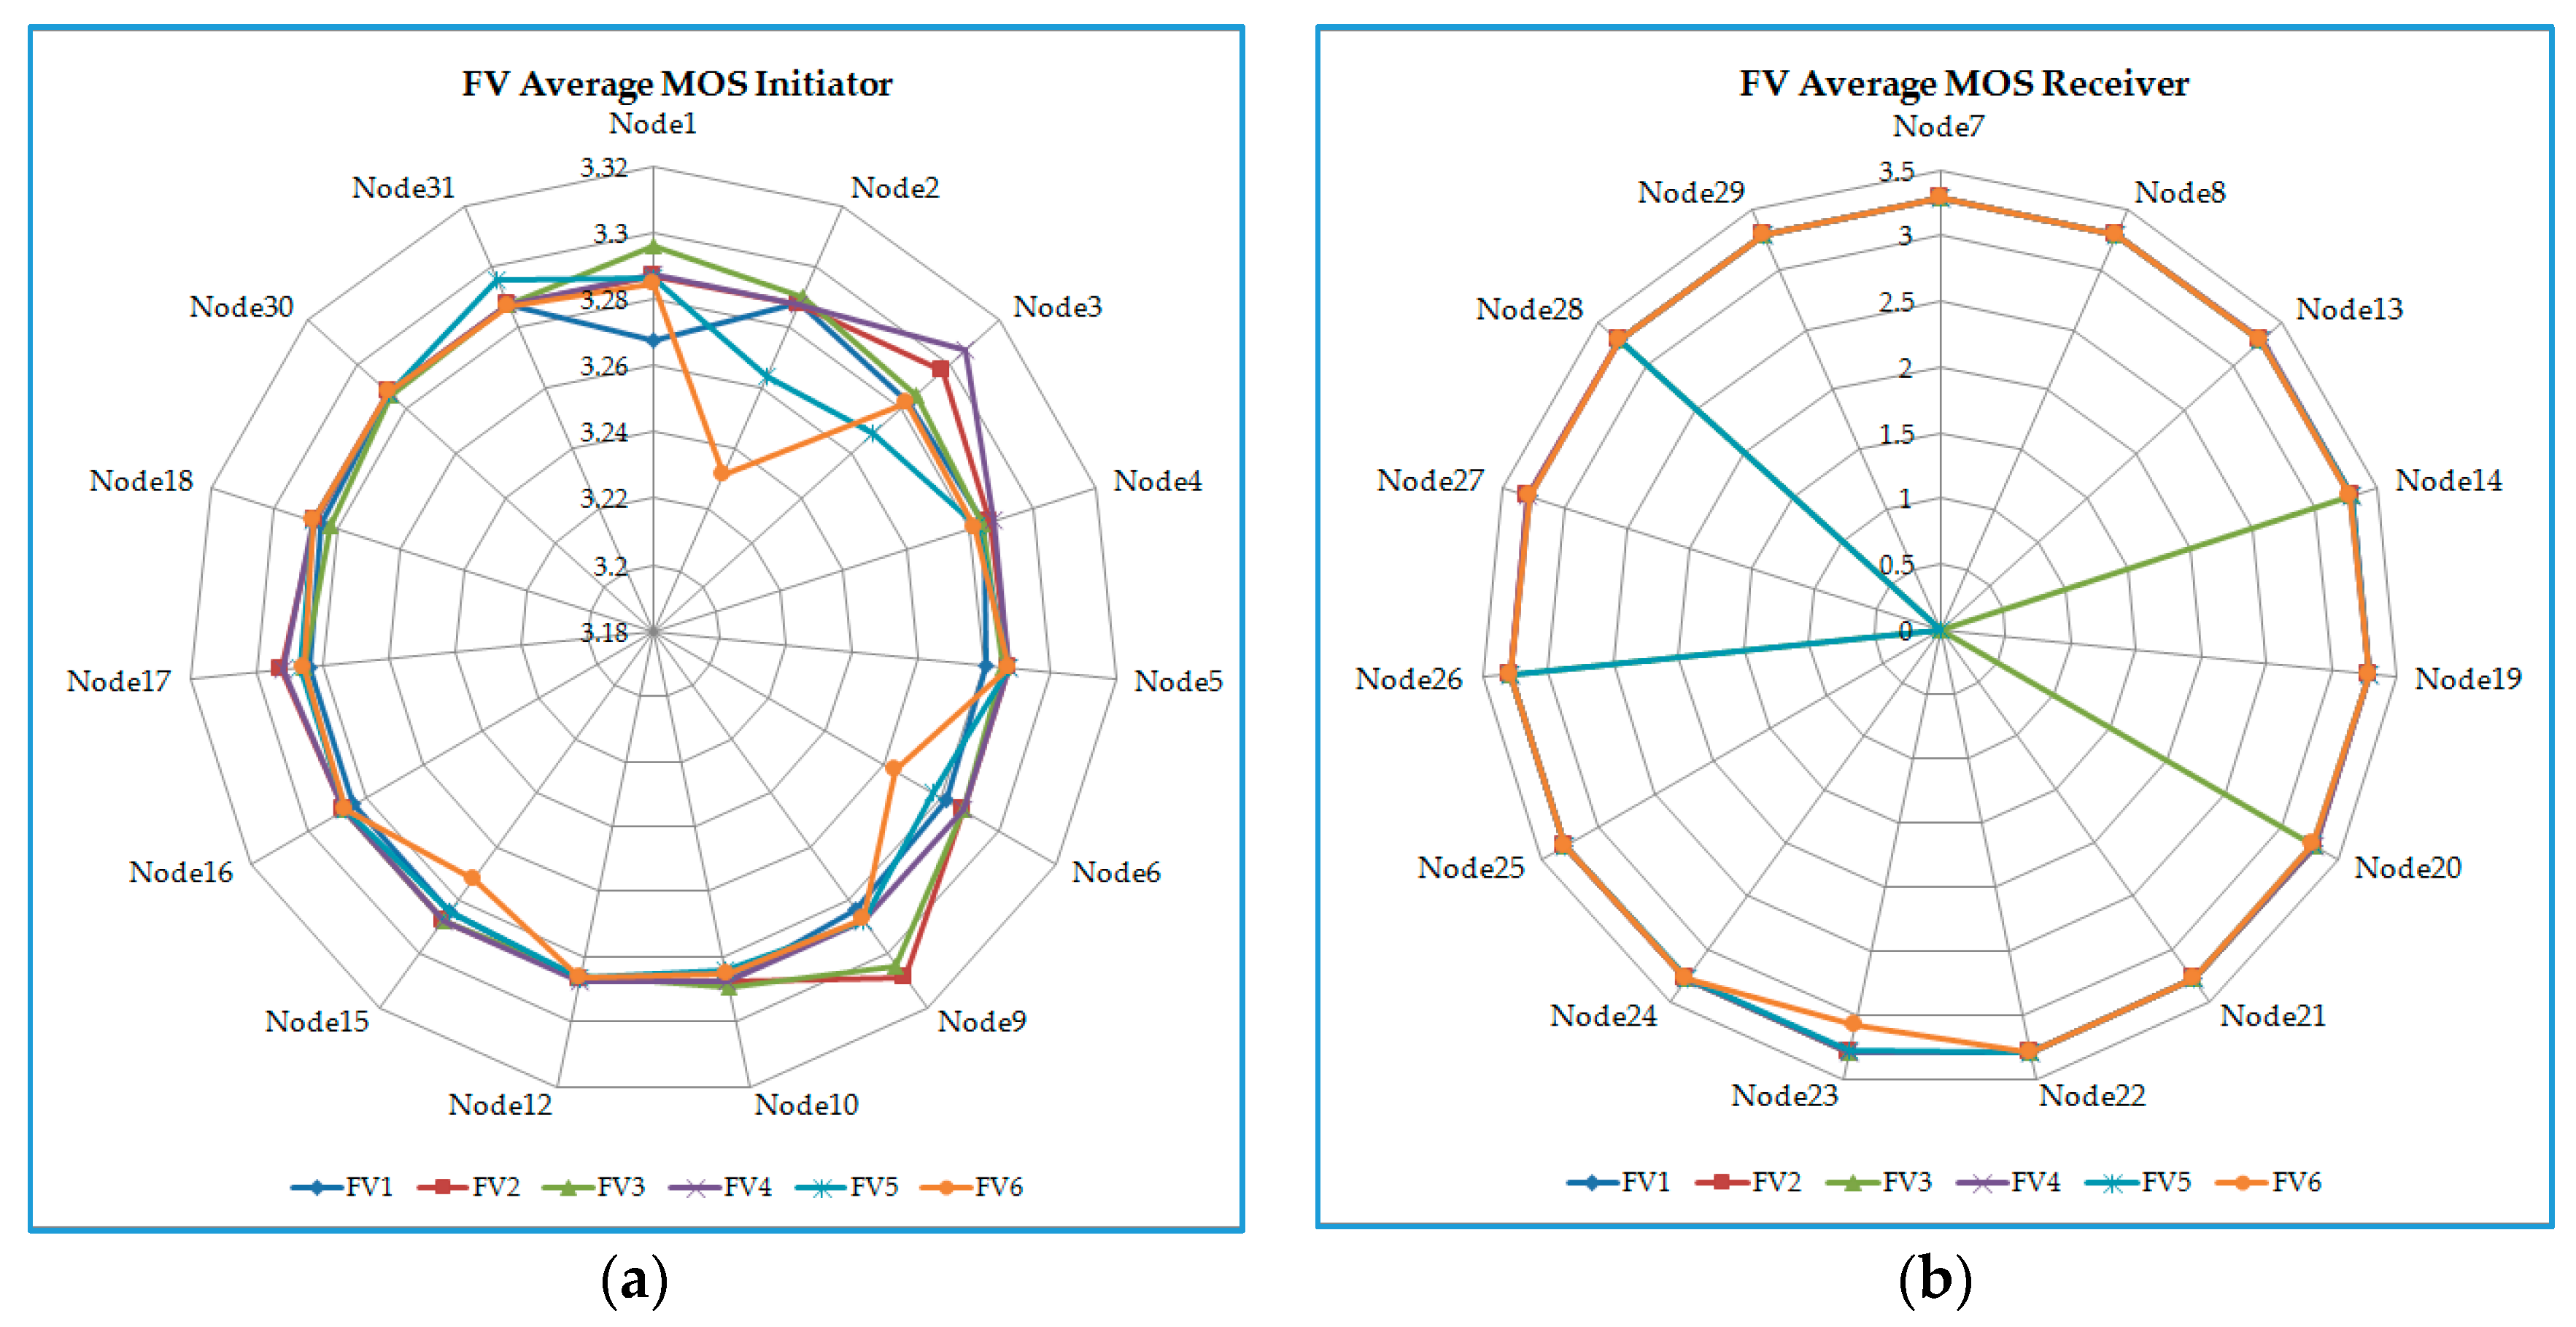 thesis os voip Performance assessment of whatsapp and imo on android operating system ( lollipop and kitkat) during voip calls using 3g or wifi rc de oliveira α, hm de oliveira σ, ra ramalhoρ & lps viana ѡ abstract- this paper assesses the performance of mobile messaging and voip connections we compared the cpu.